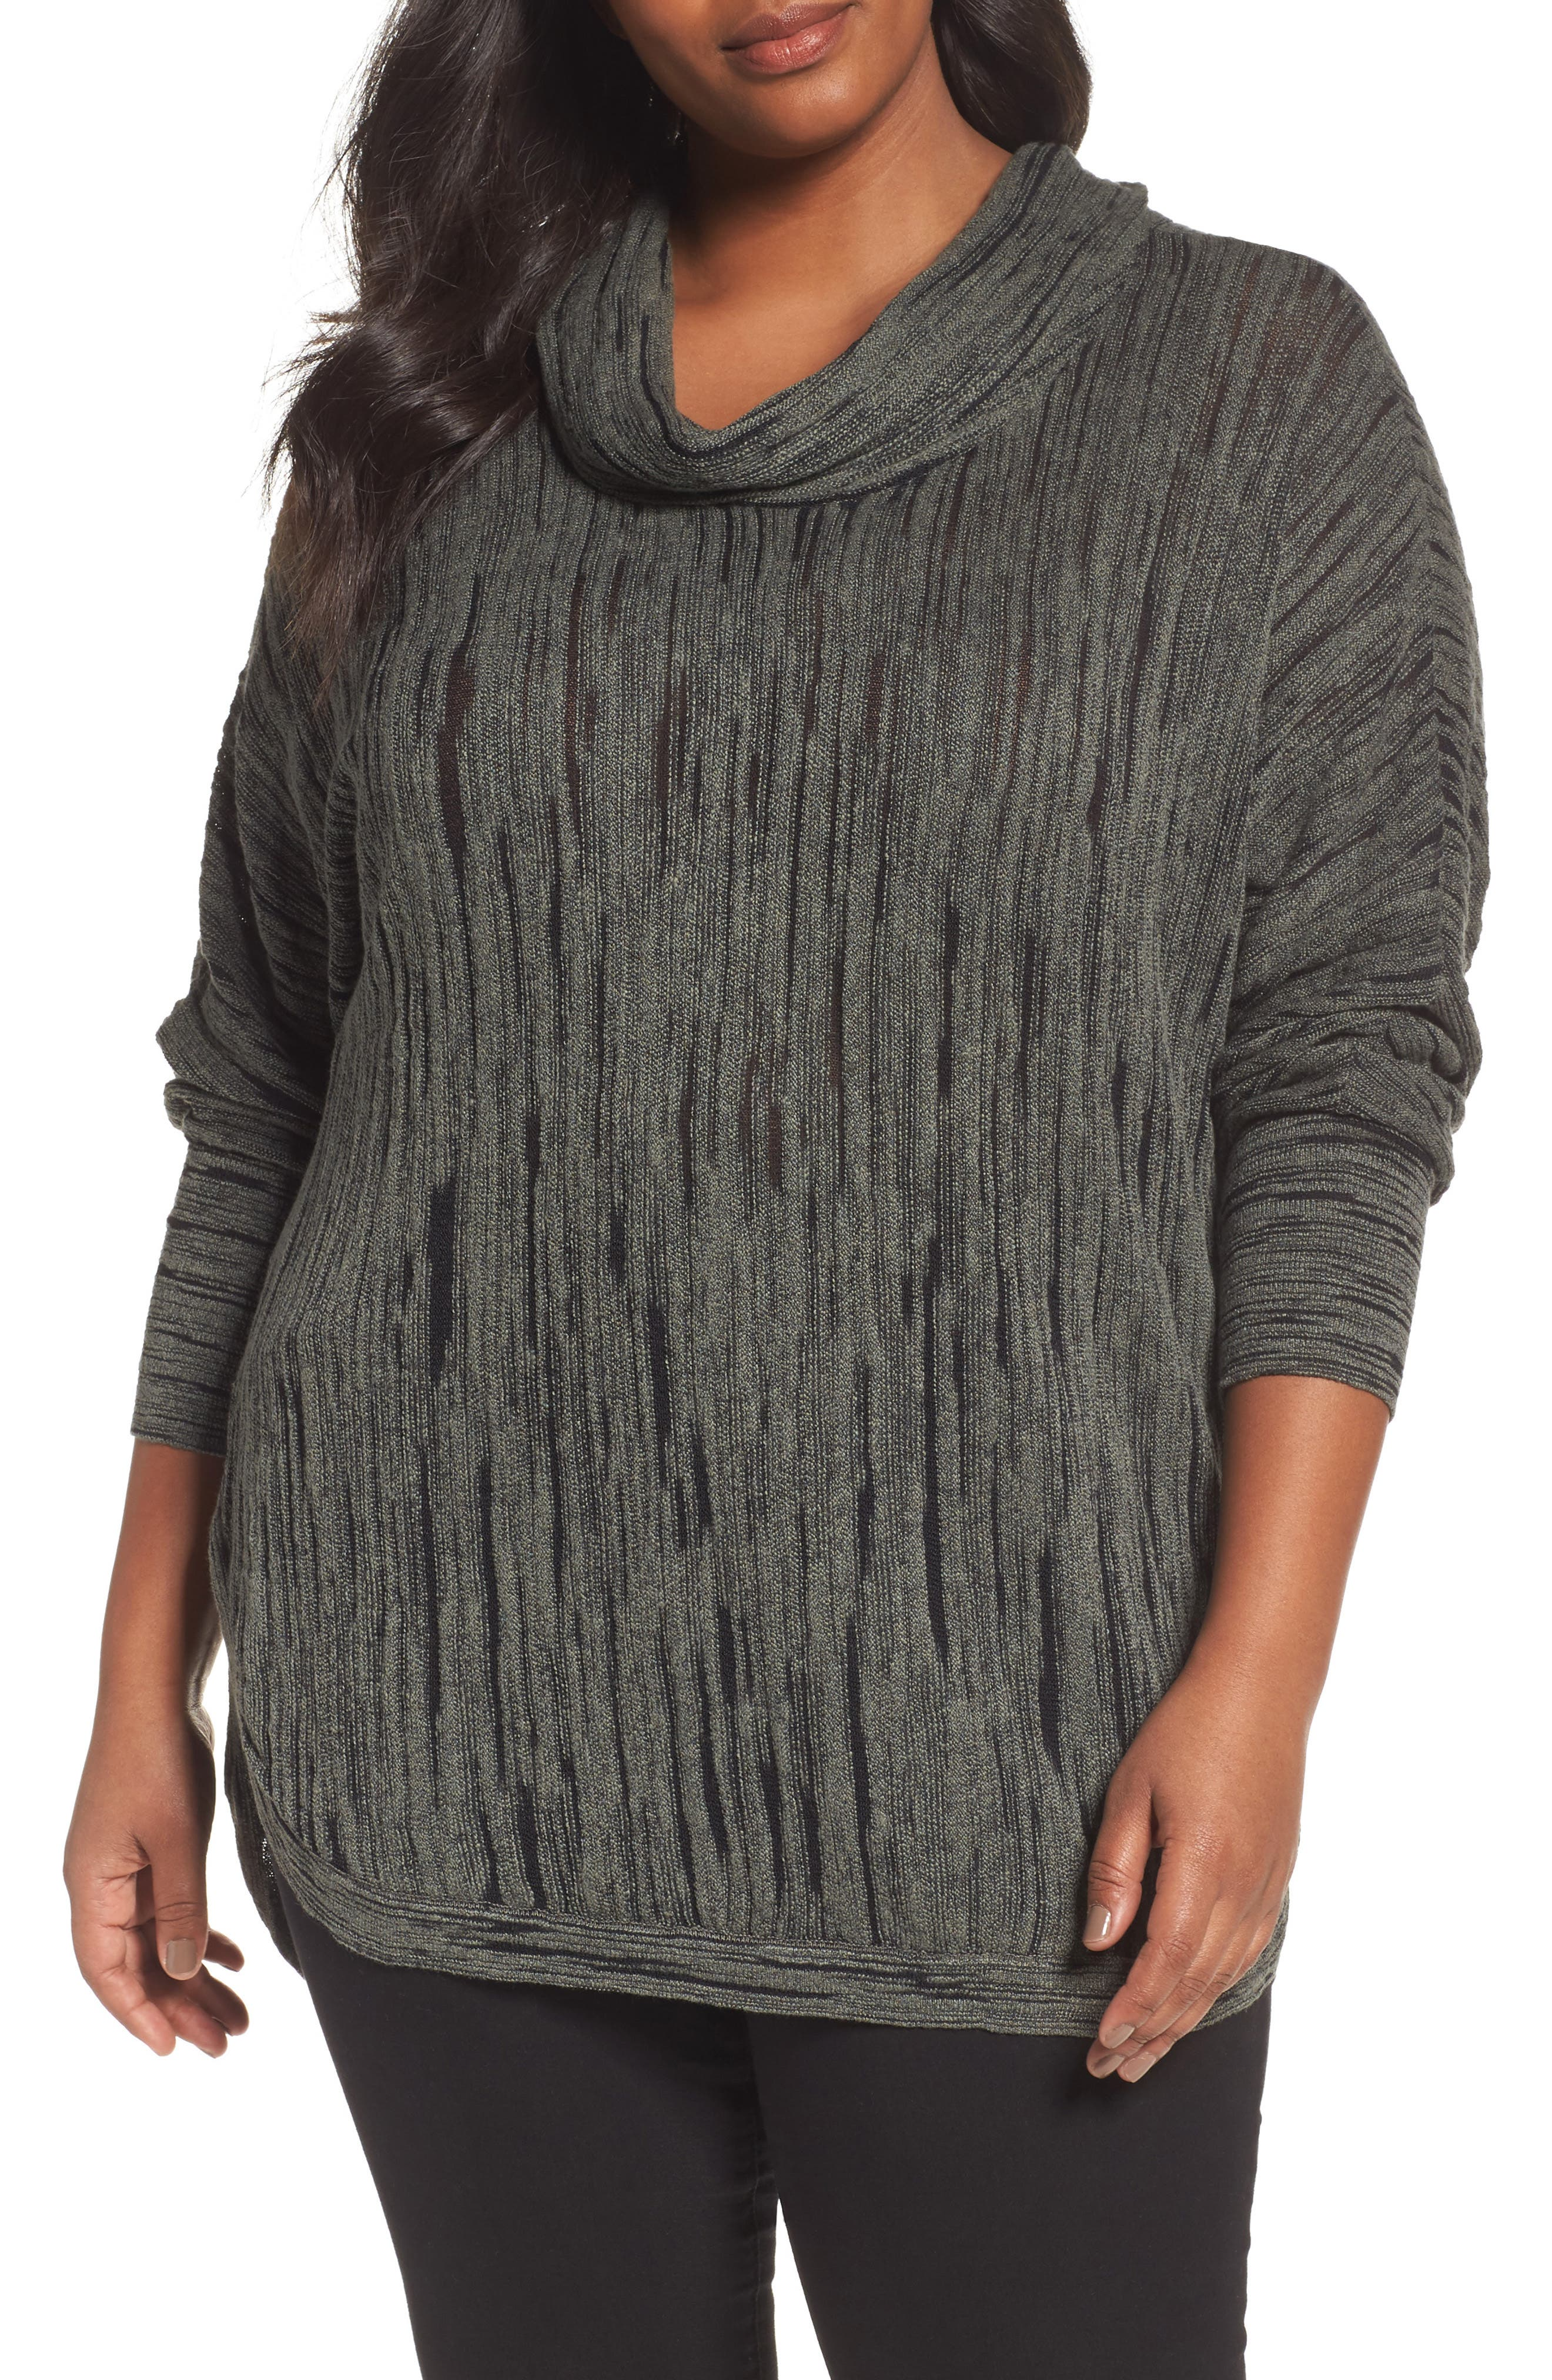 Alternate Image 1 Selected - NIC+ZOE Cowl Neck Top (Plus Size)